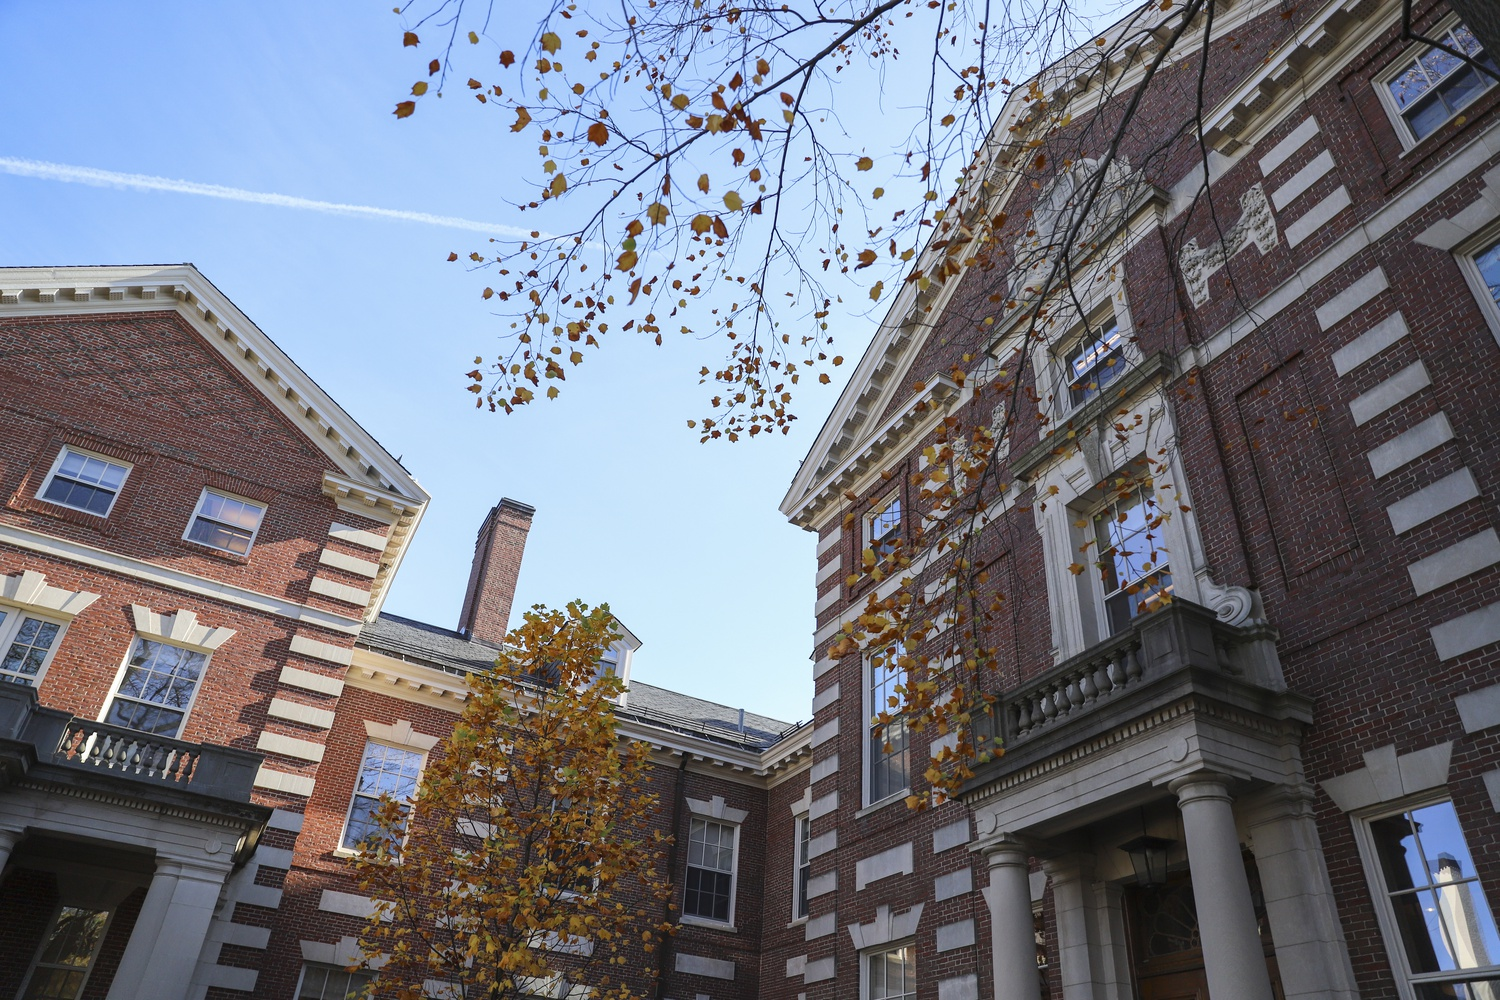 The Barker Center houses several academic departments in the Arts and Humanities.